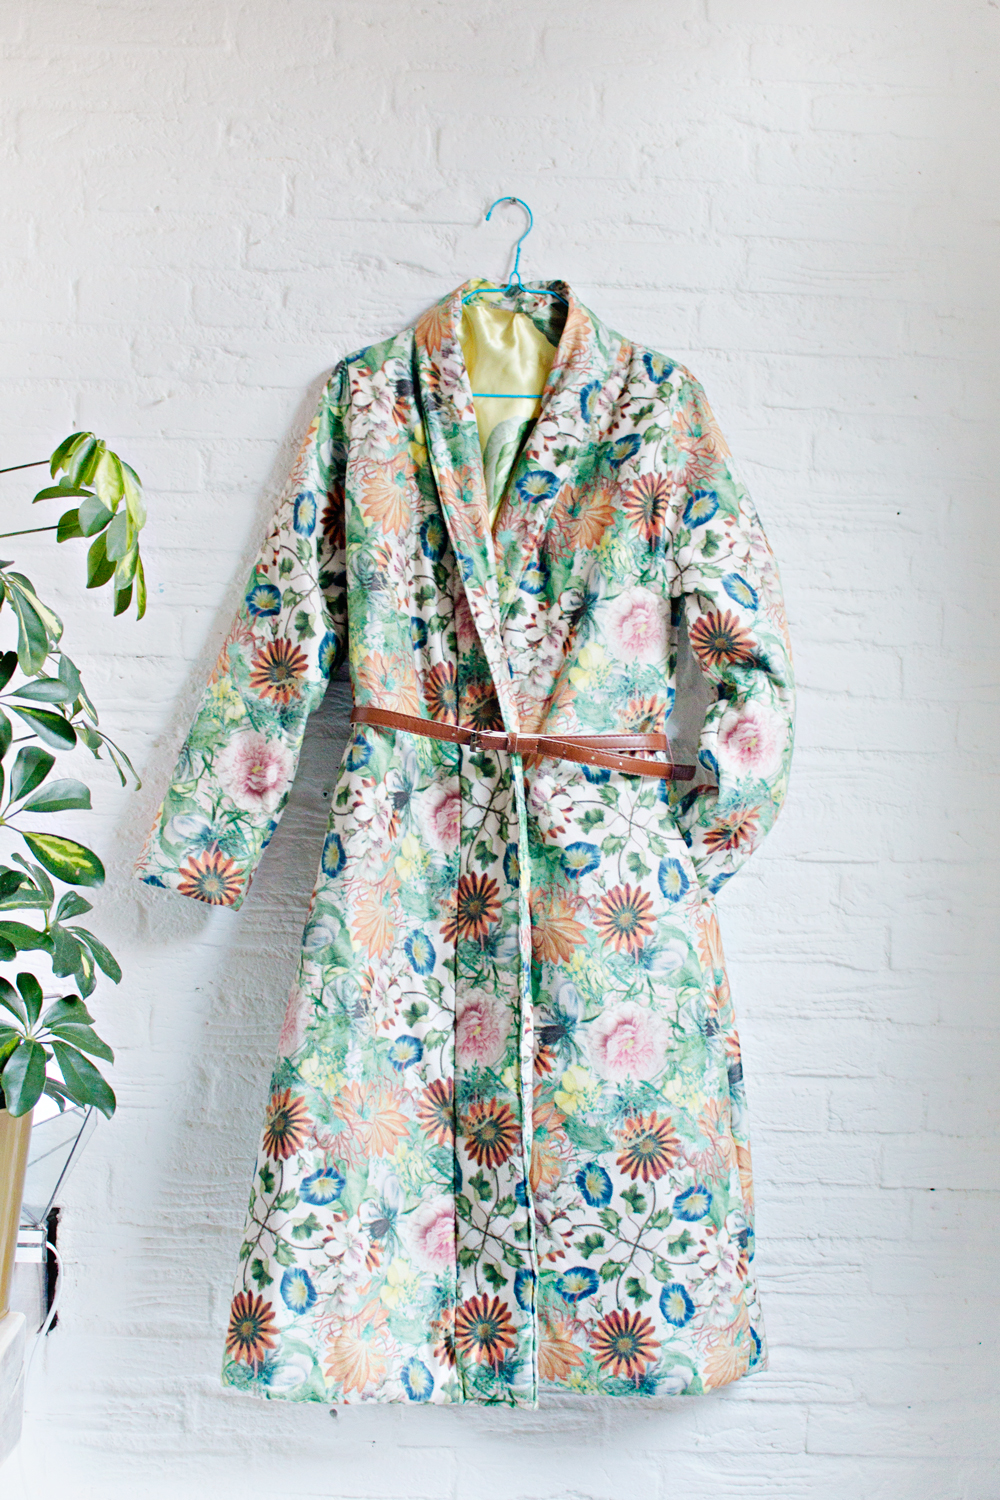 Sewing Diy How To Make A Robe Coat In 30 Steps Without A Sewing Pattern